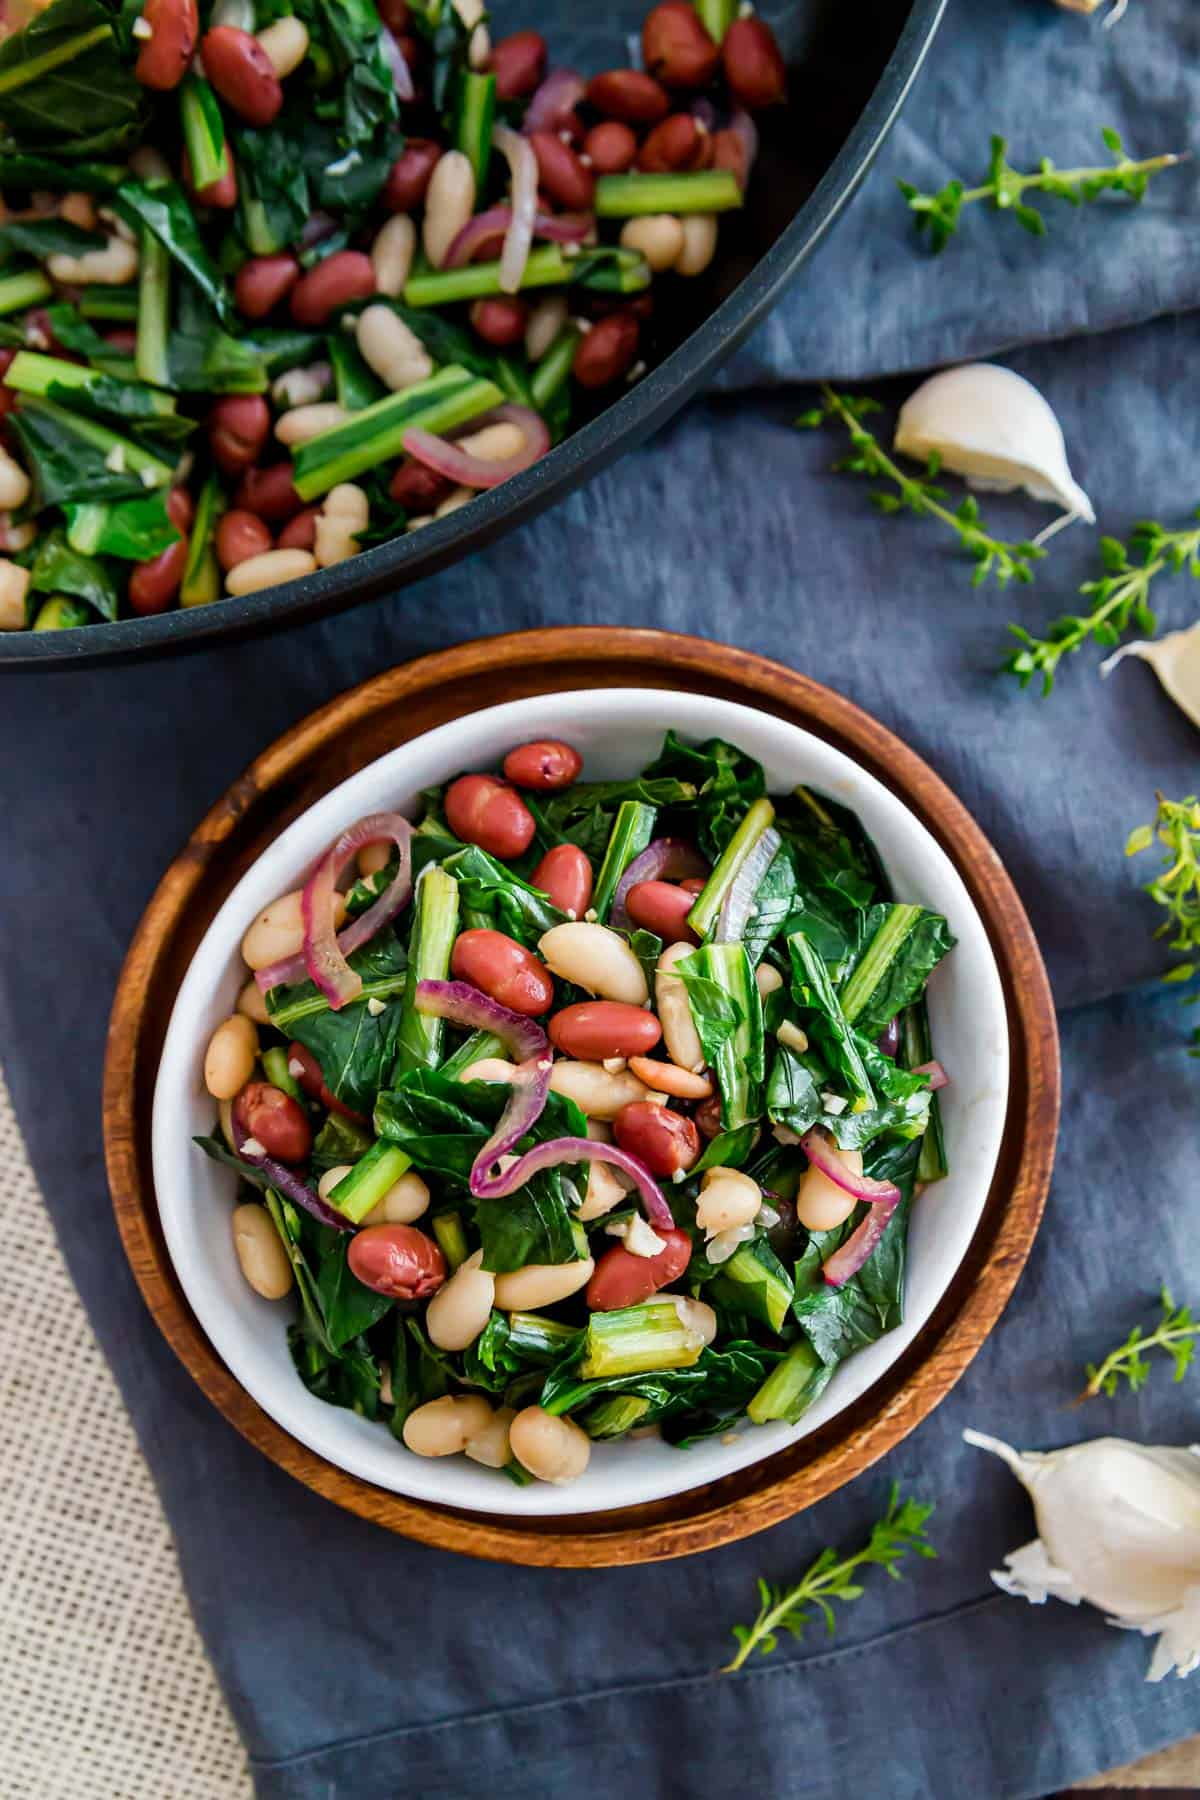 Easily prepare dandelion greens in this skillet recipe with beans, red onions and a splash of balsamic vinegar.